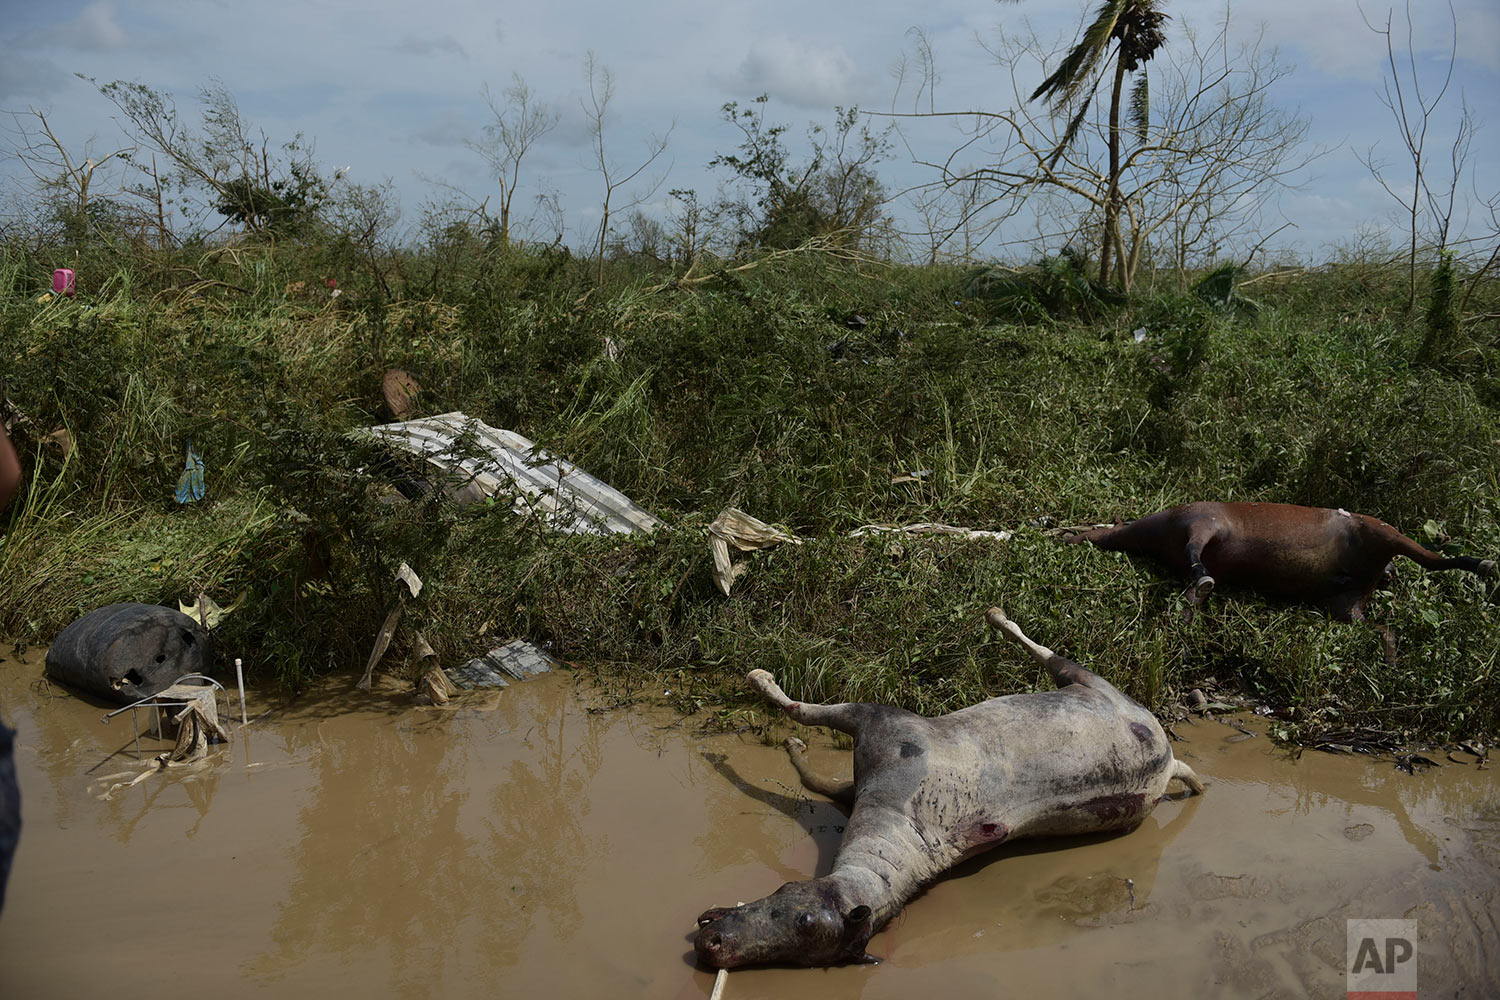 Dead horses lay on the side of the road after the passing of Hurricane Maria, in Toa Baja, Puerto Rico, Friday, September 22, 2017. (AP Photo/Carlos Giusti)